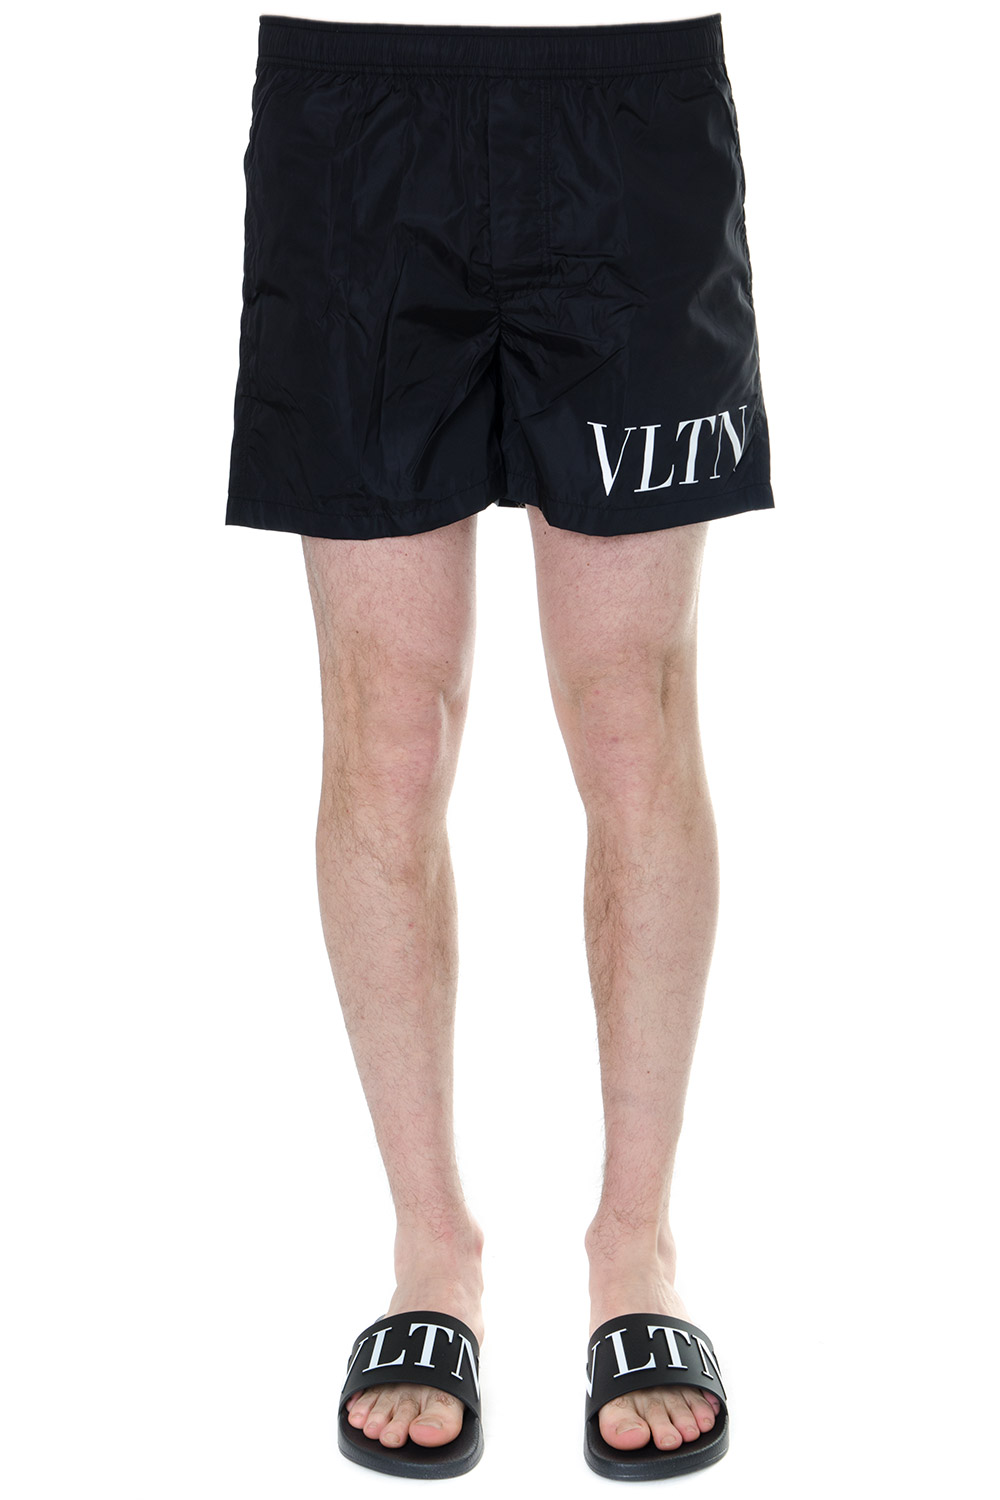 2ad316d51de24 VLTN BLACK SWIM SHORTS SS 2019 - VALENTINO - Boutique Galiano